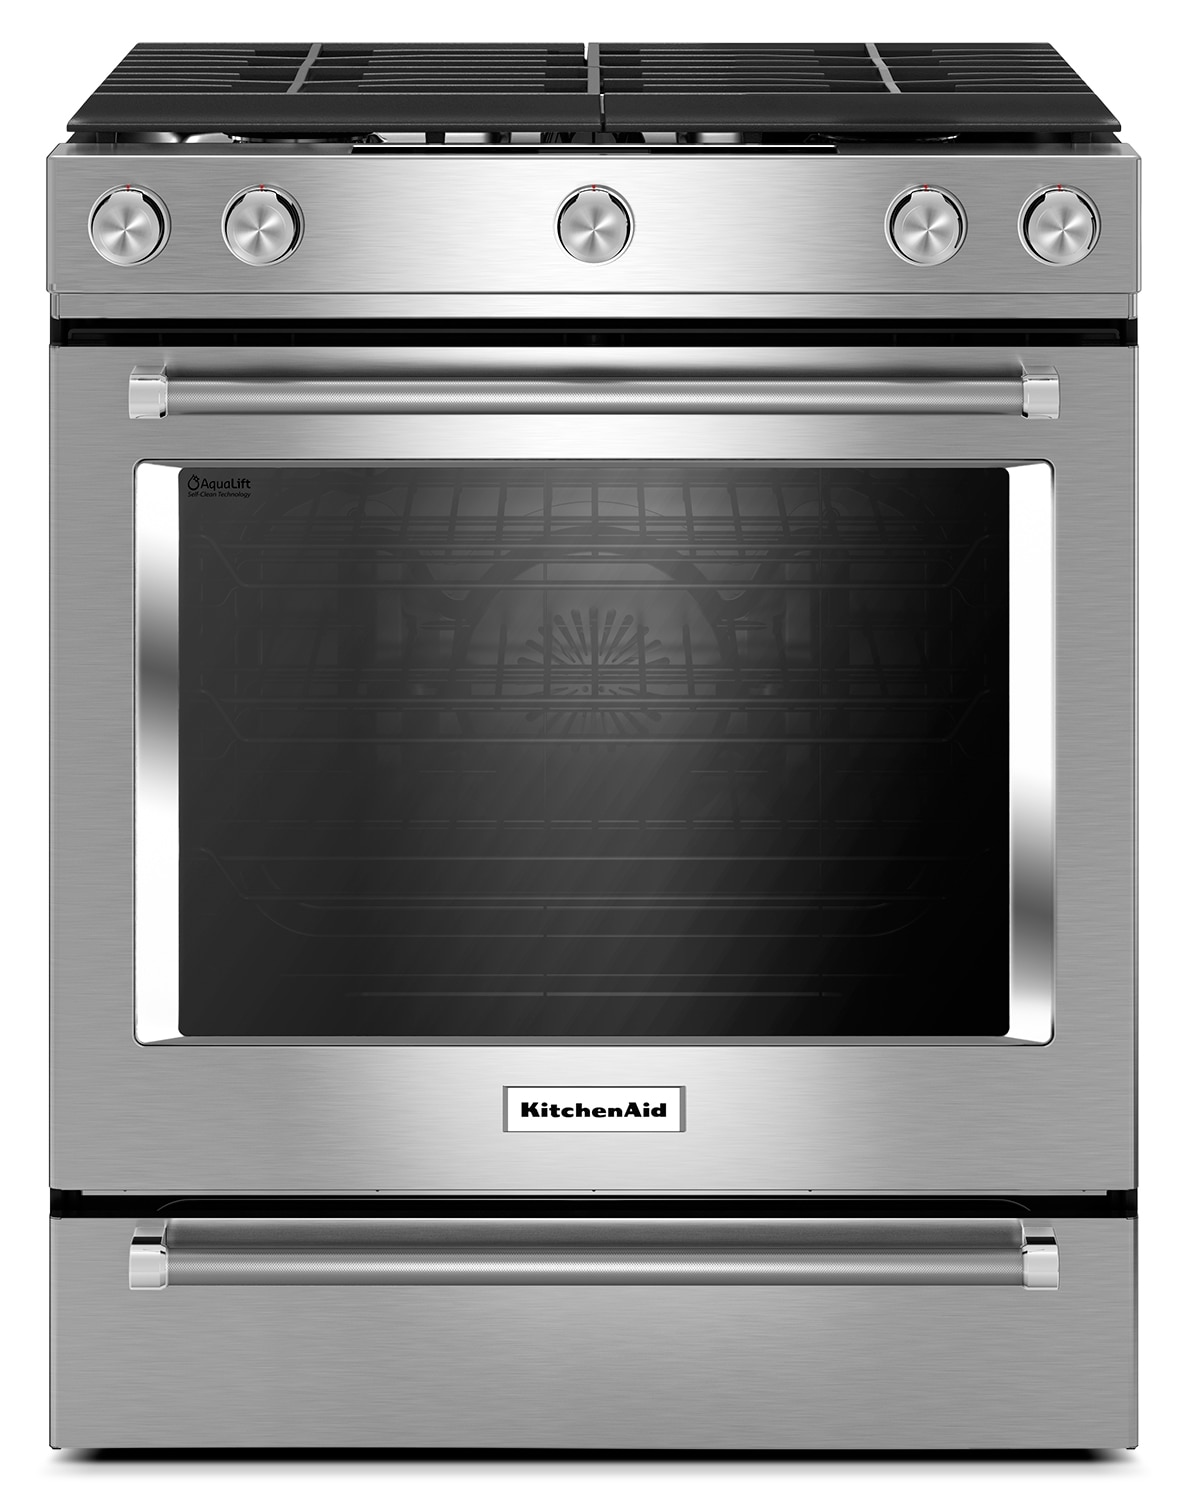 Cooking Products - KitchenAid Stainless Steel Slide-In Gas Convection Range (5.8 Cu. Ft.) - KSGG700ESS